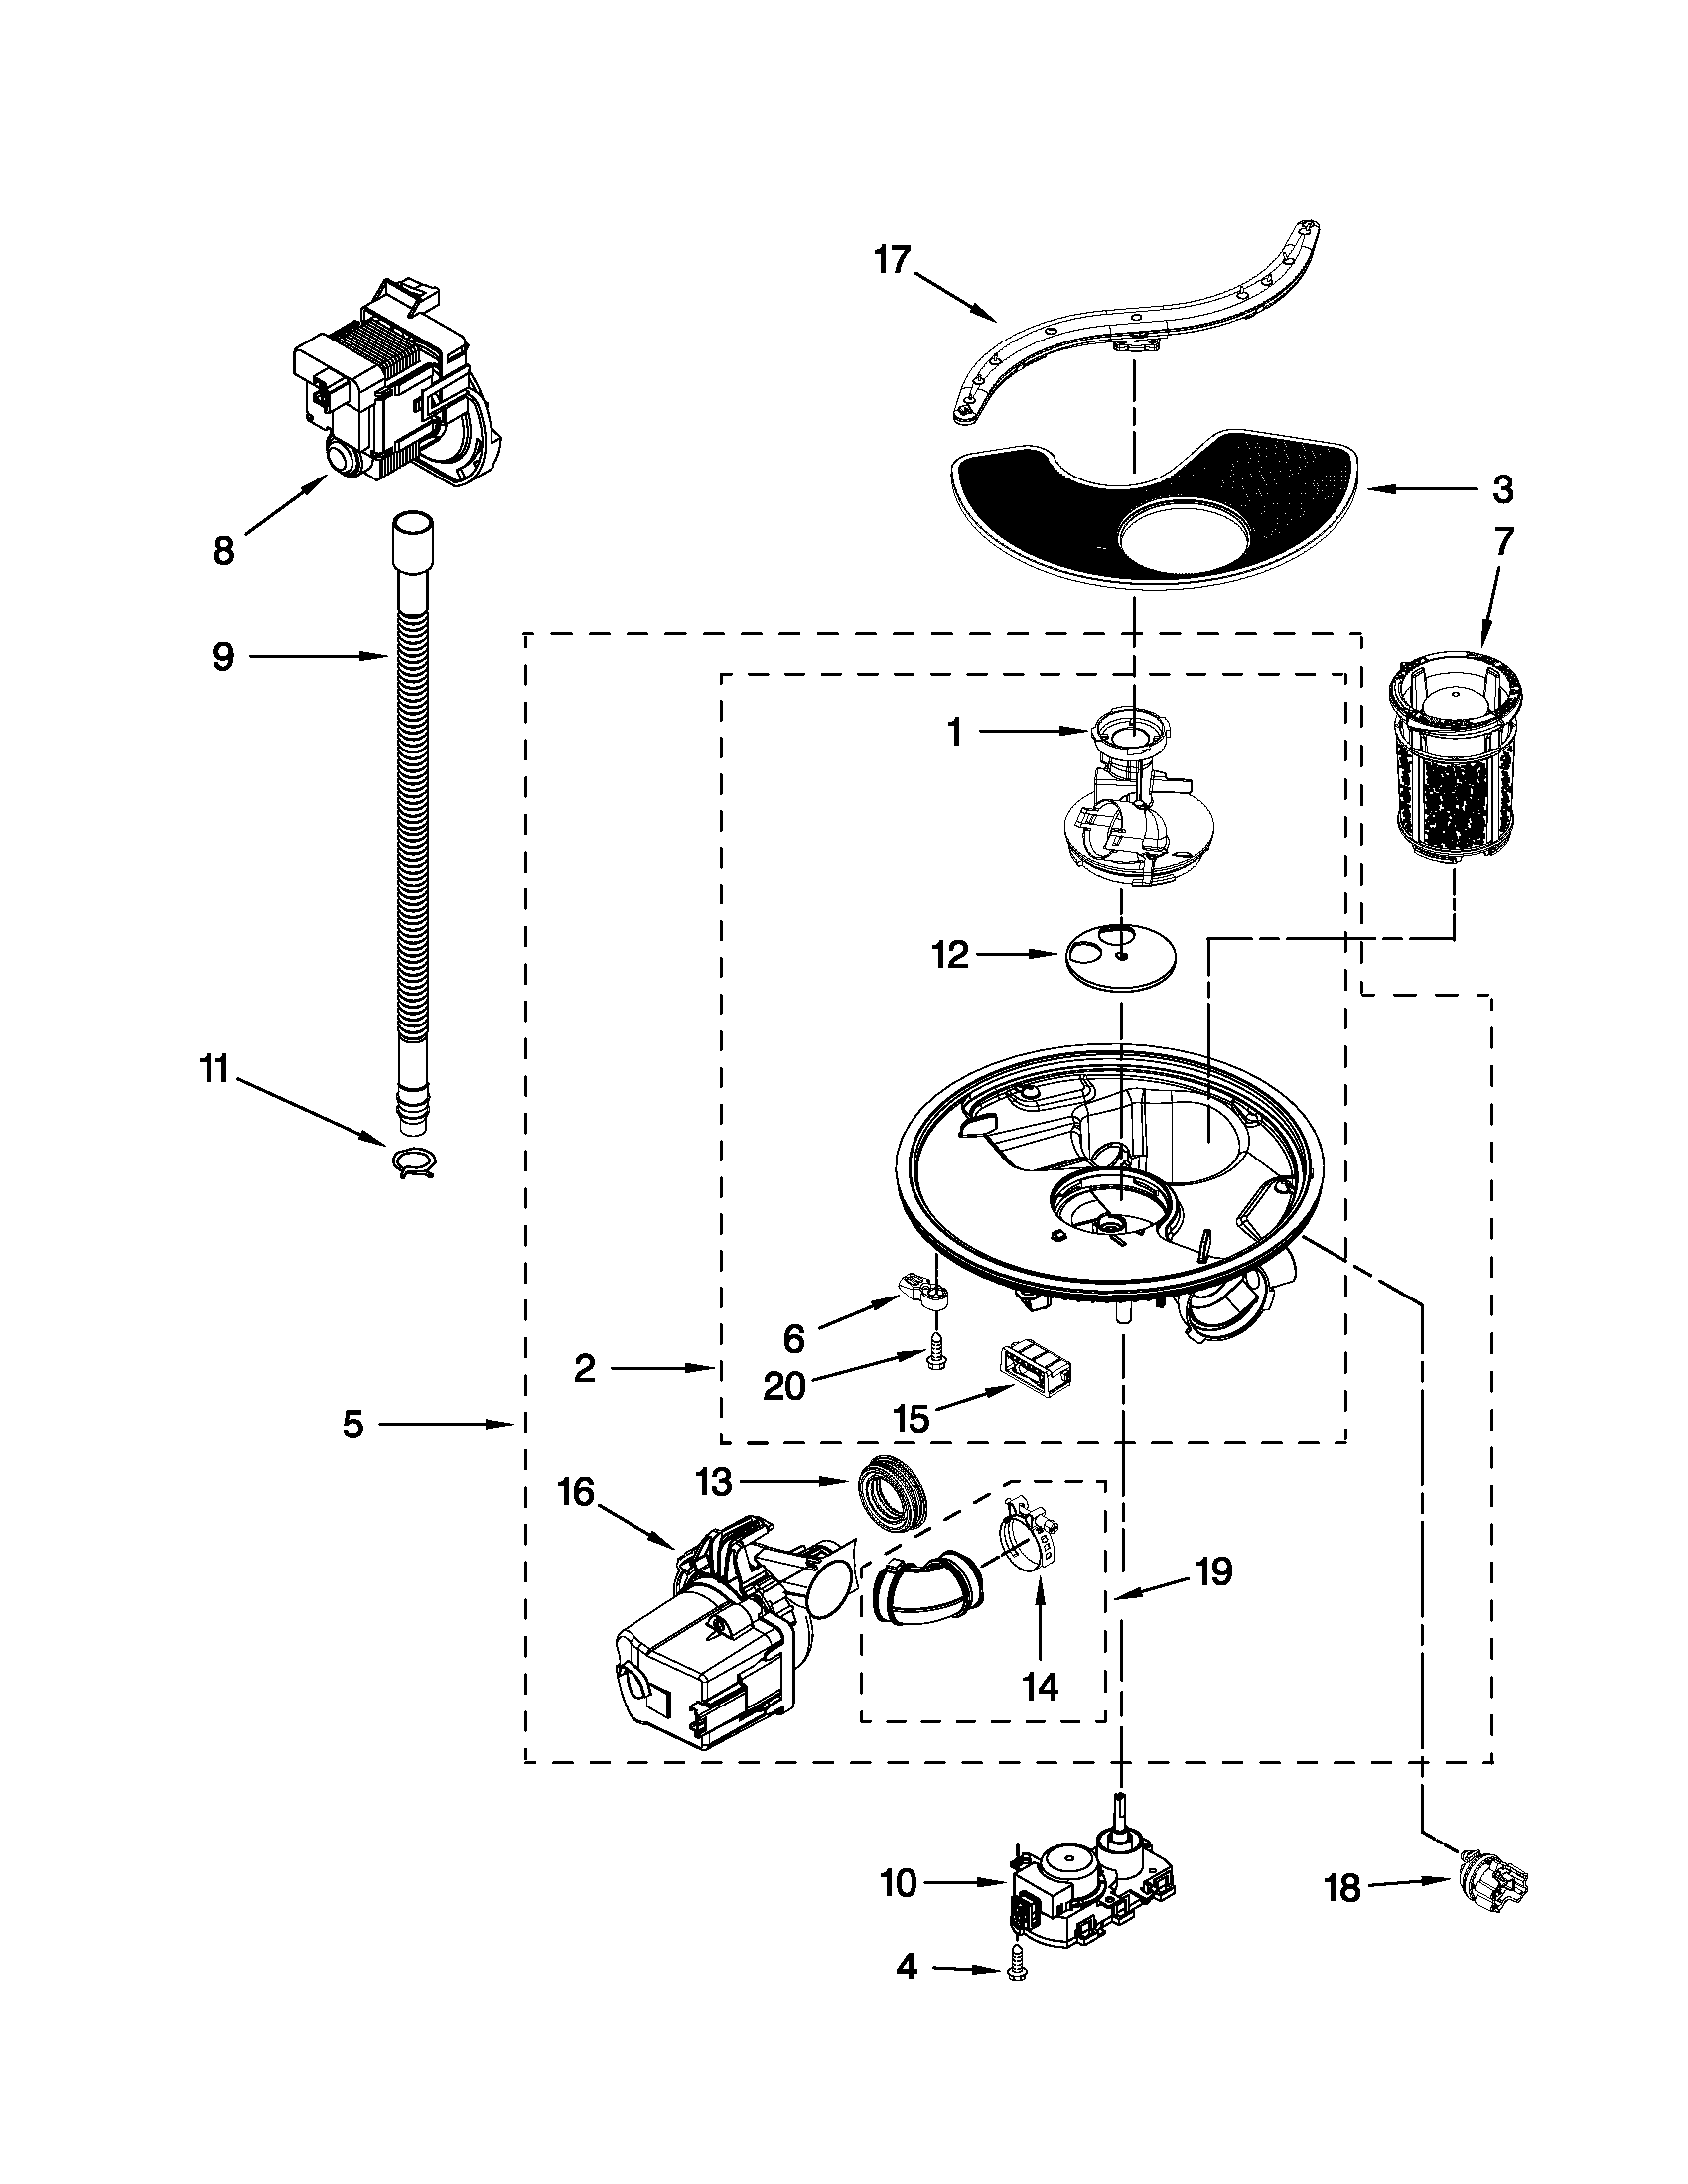 Kenmore 66513039K111 pump and motor parts diagram